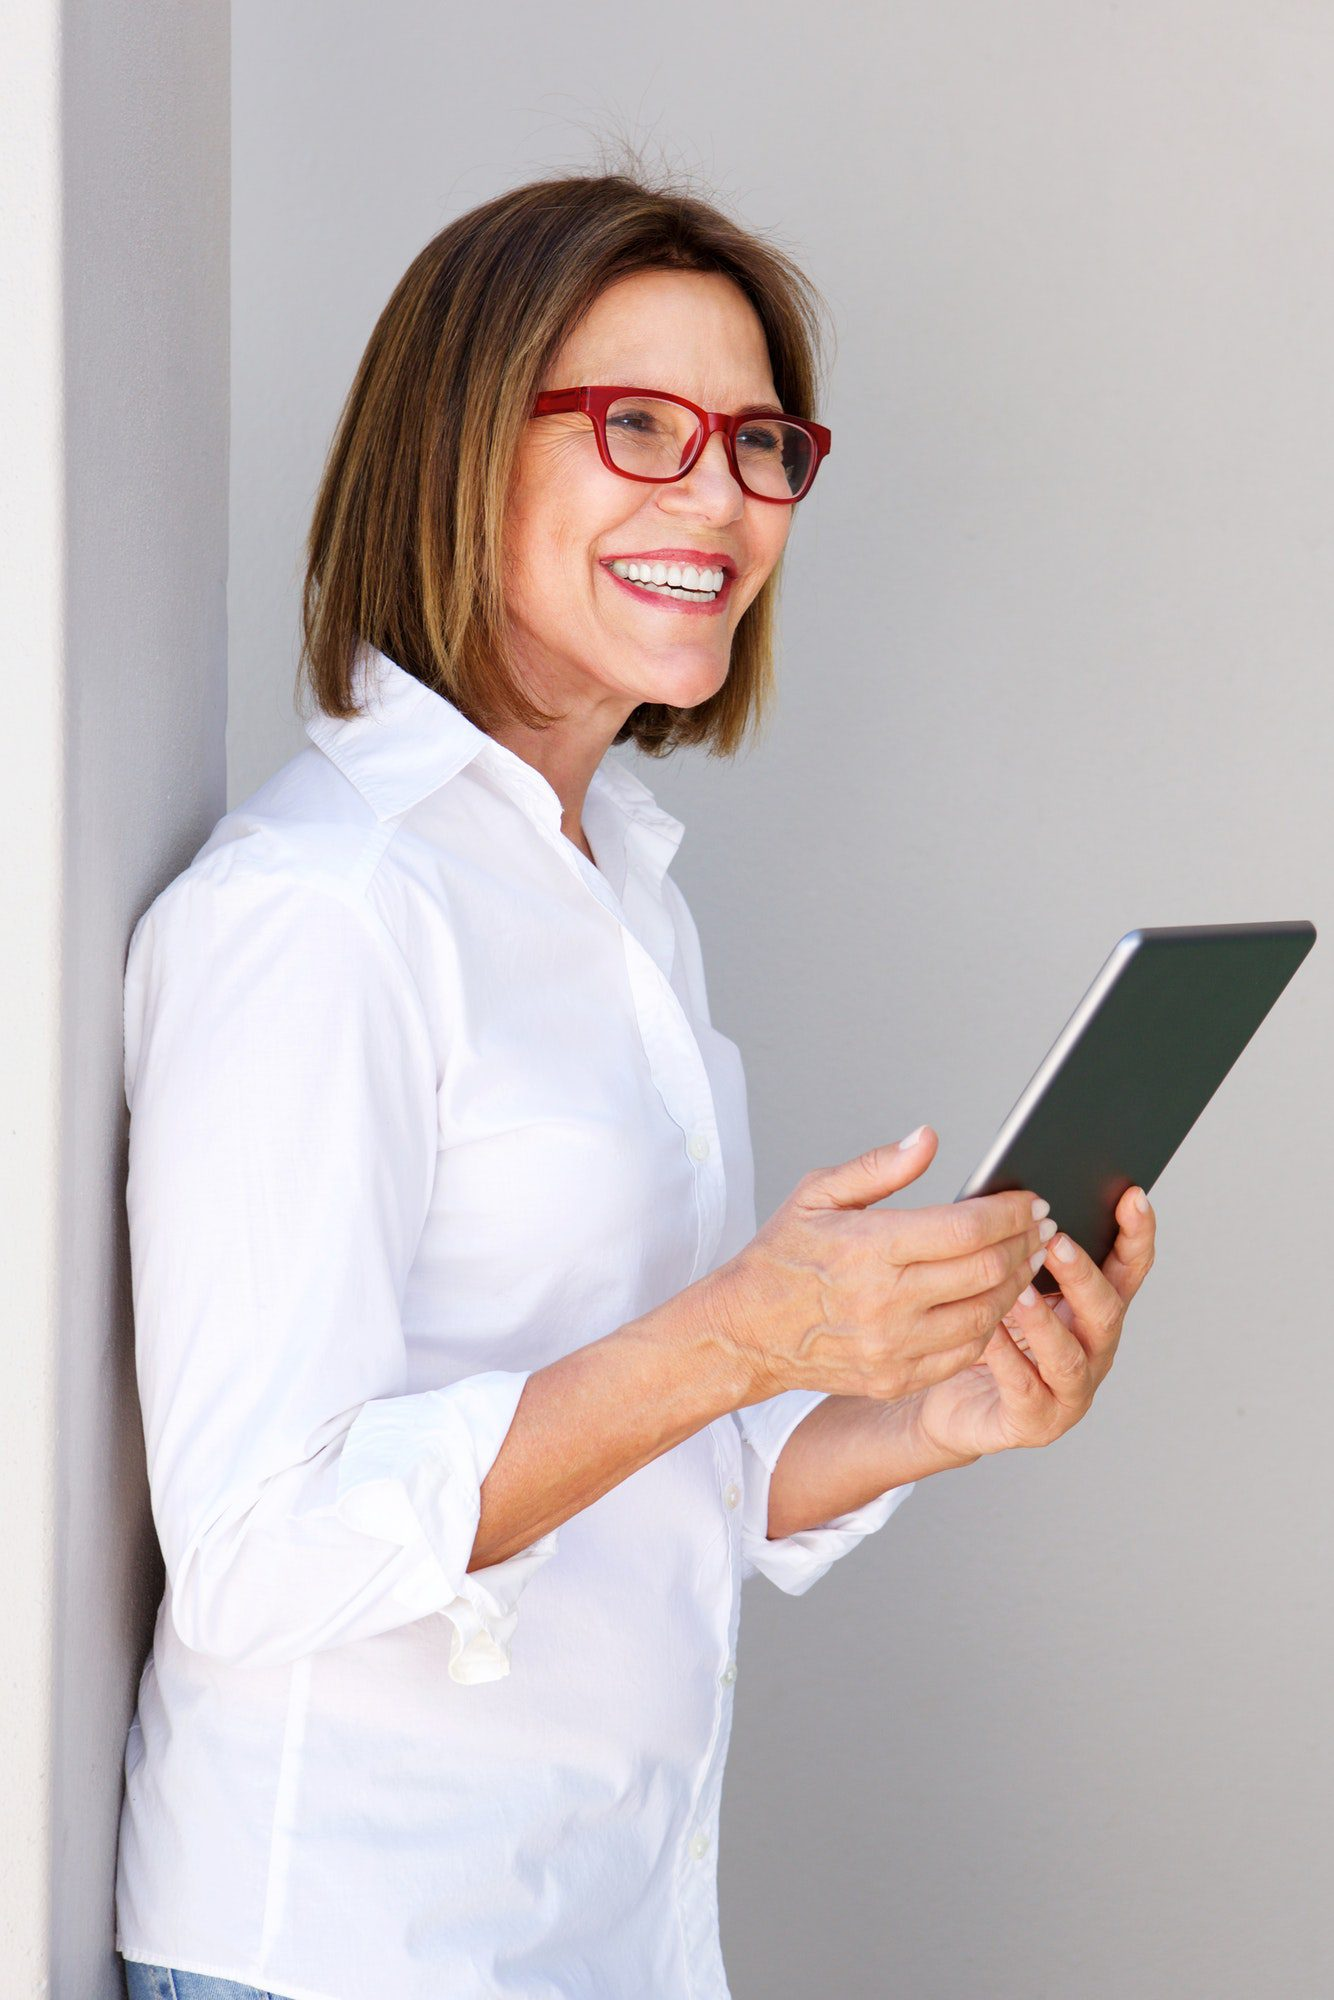 business woman smiling and holding digital tablet